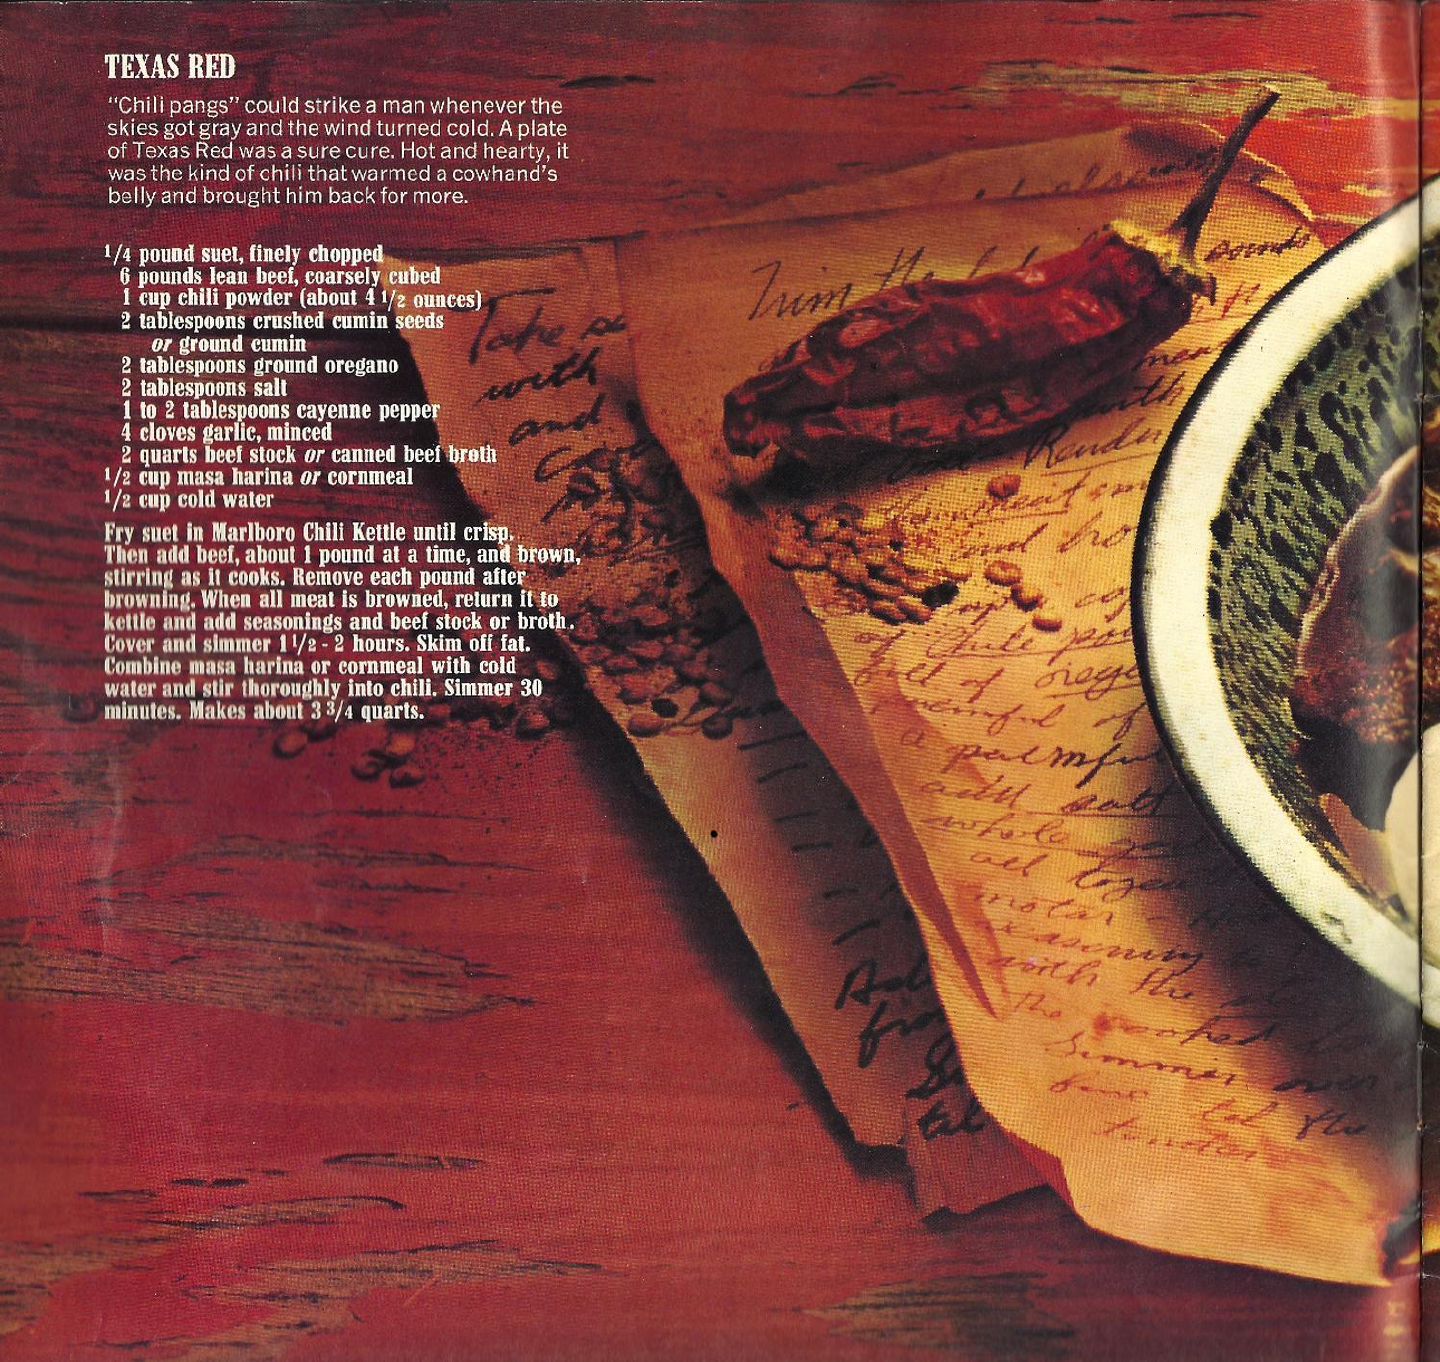 Famous Chili Recipes From Marlboro Country 1979 Philip Morris Cookbook Documents Famous Chili Recipes Chili Recipes Marlboro Chili Recipe